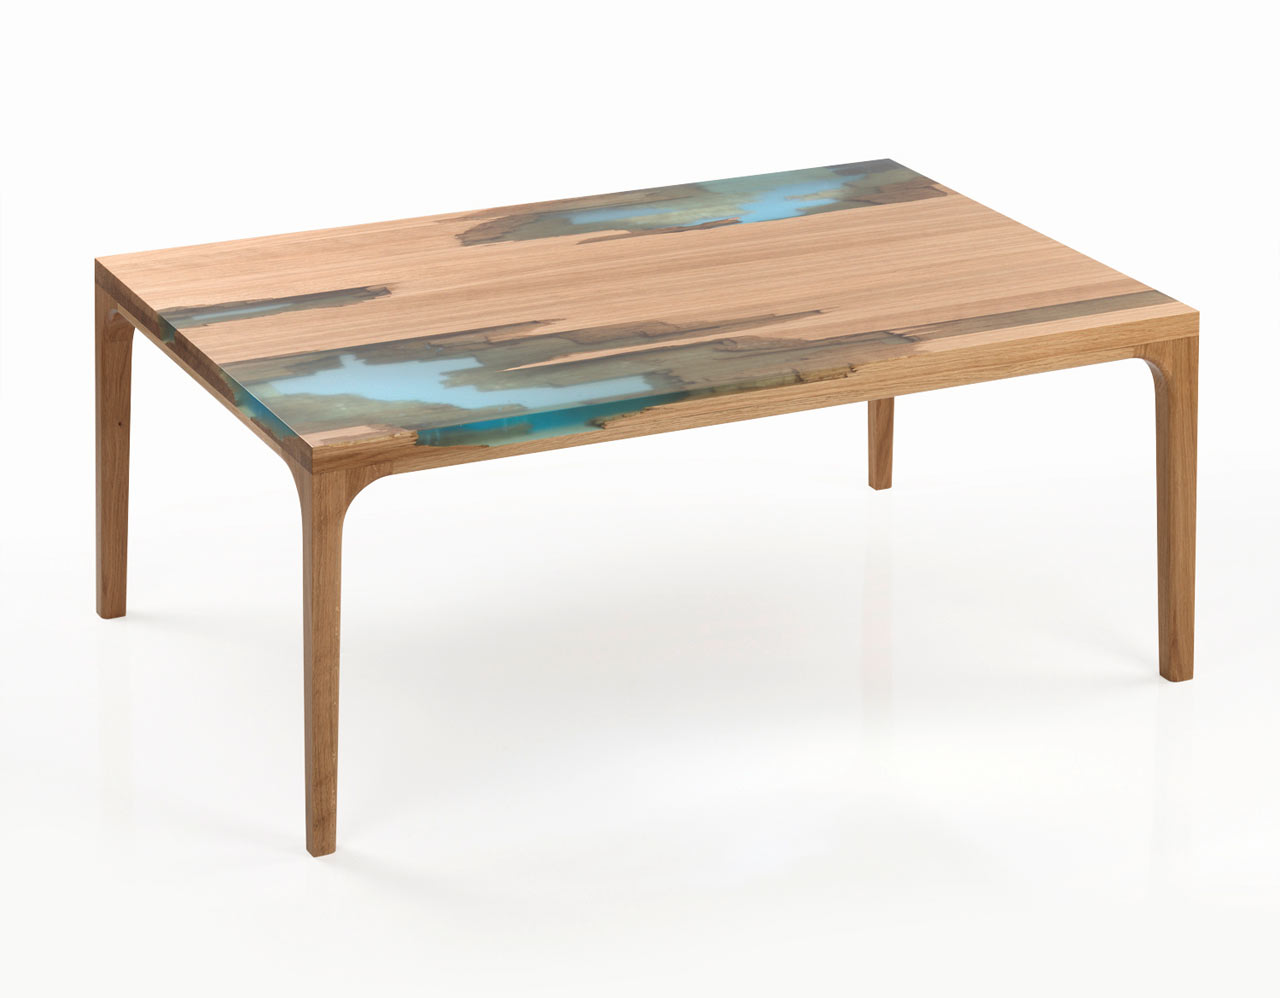 Wood and resin furniture inspired by self healing trees for Wooden furniture